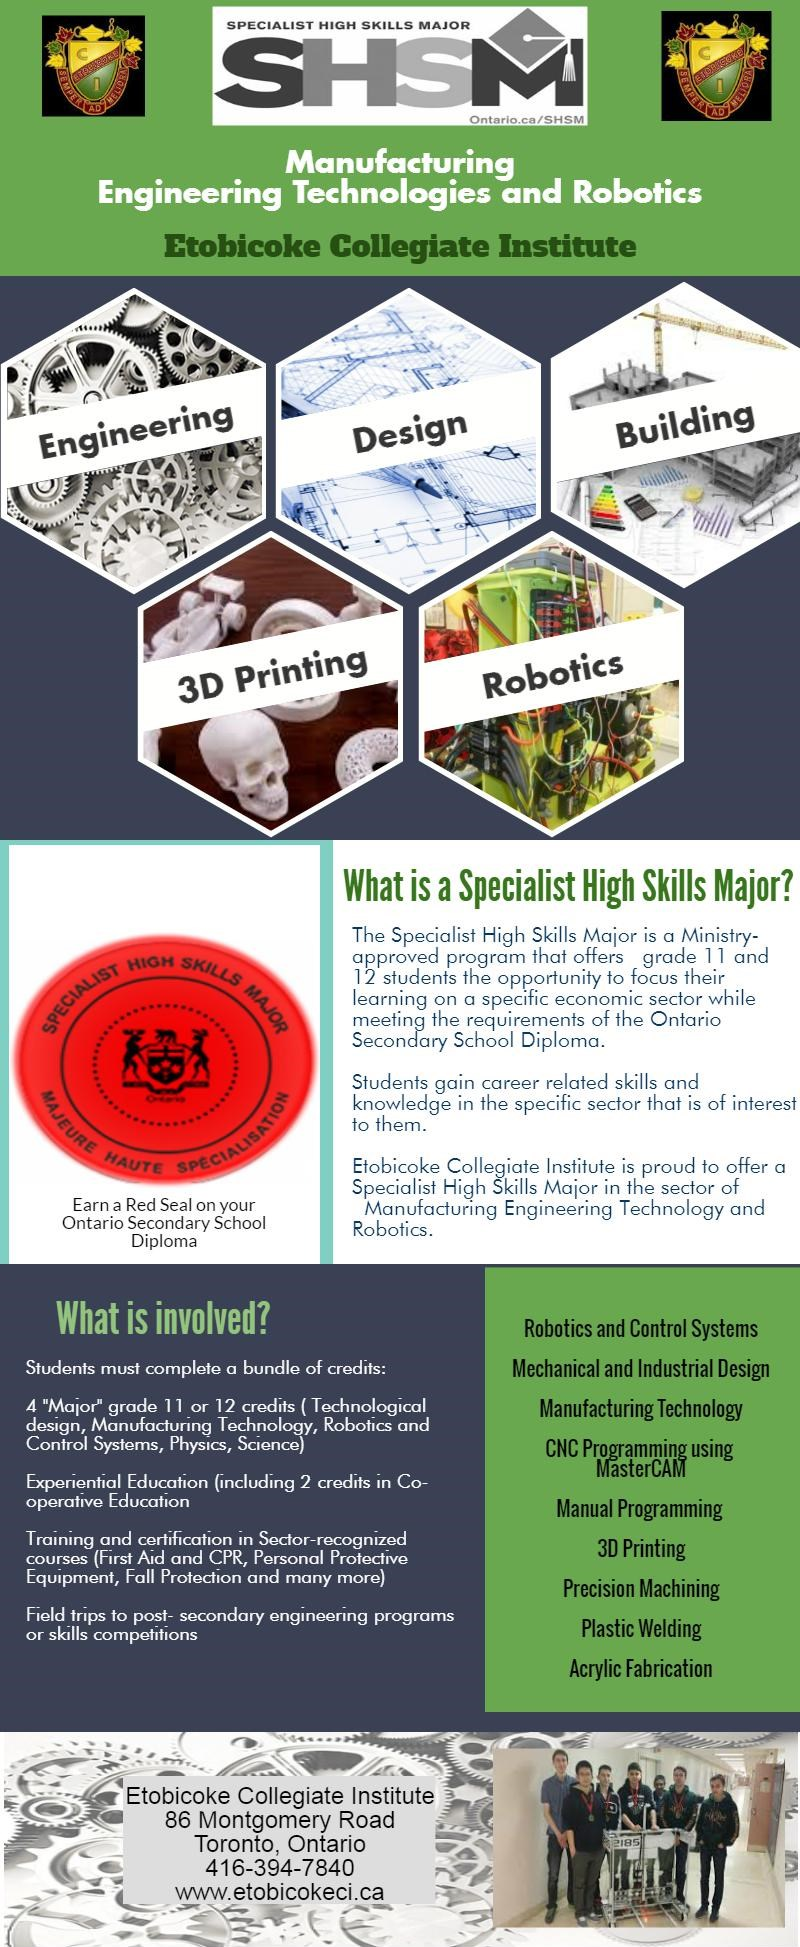 infographic about Specialist High Skills Major in Engineering Technologies